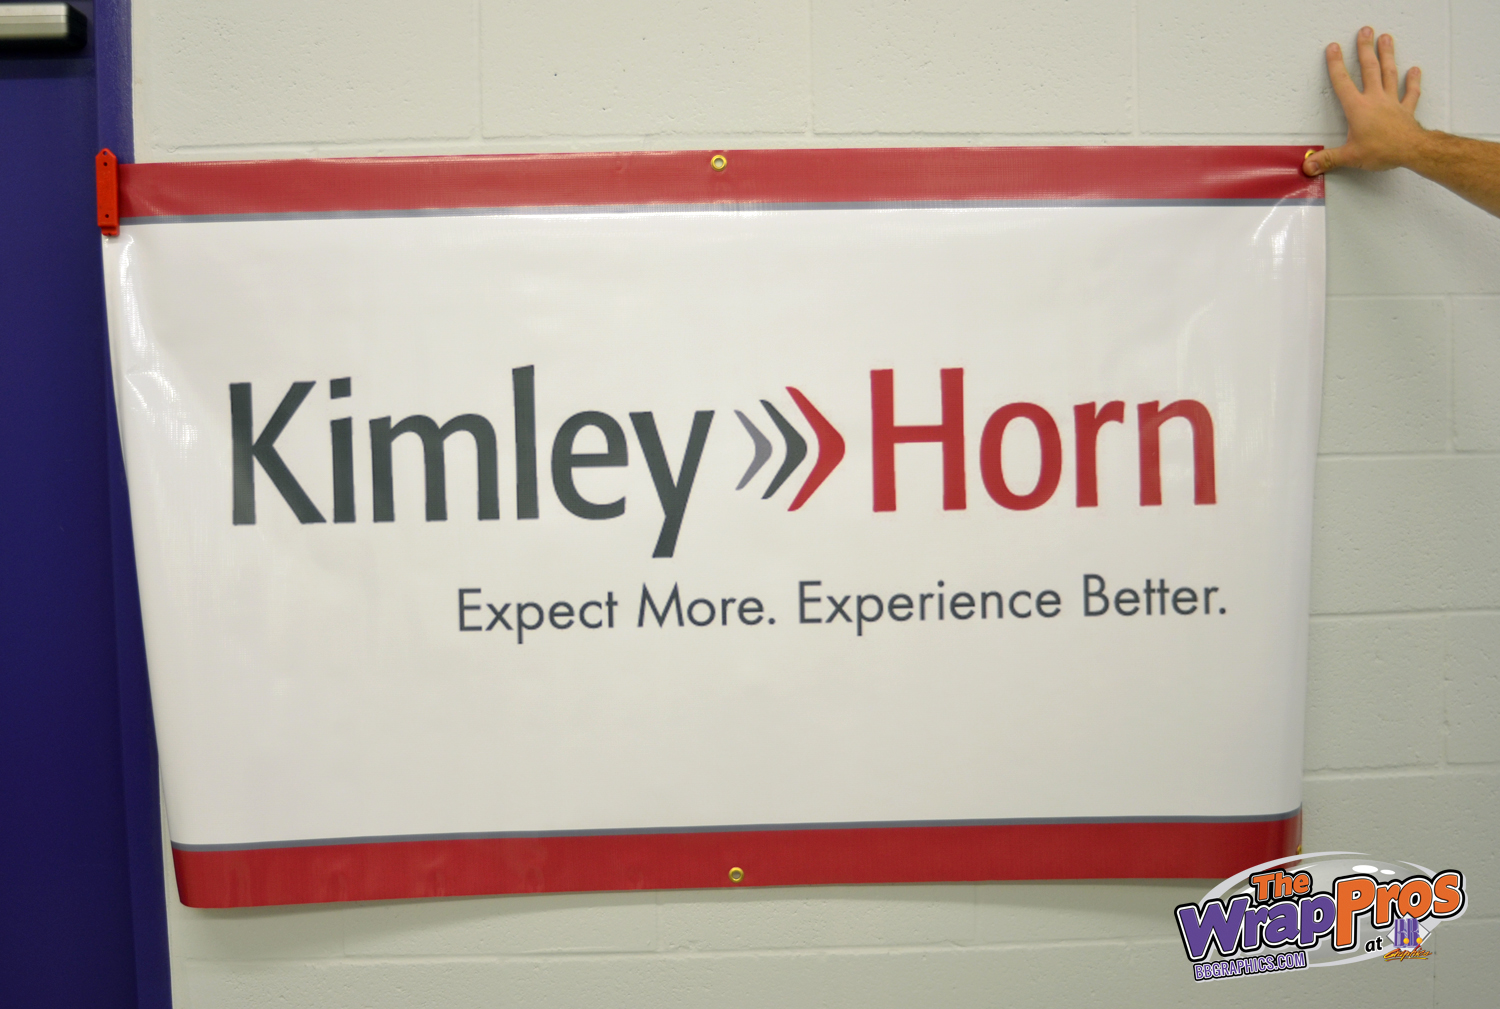 Kimley horn banner bb graphics the wrap pros Kimley horn